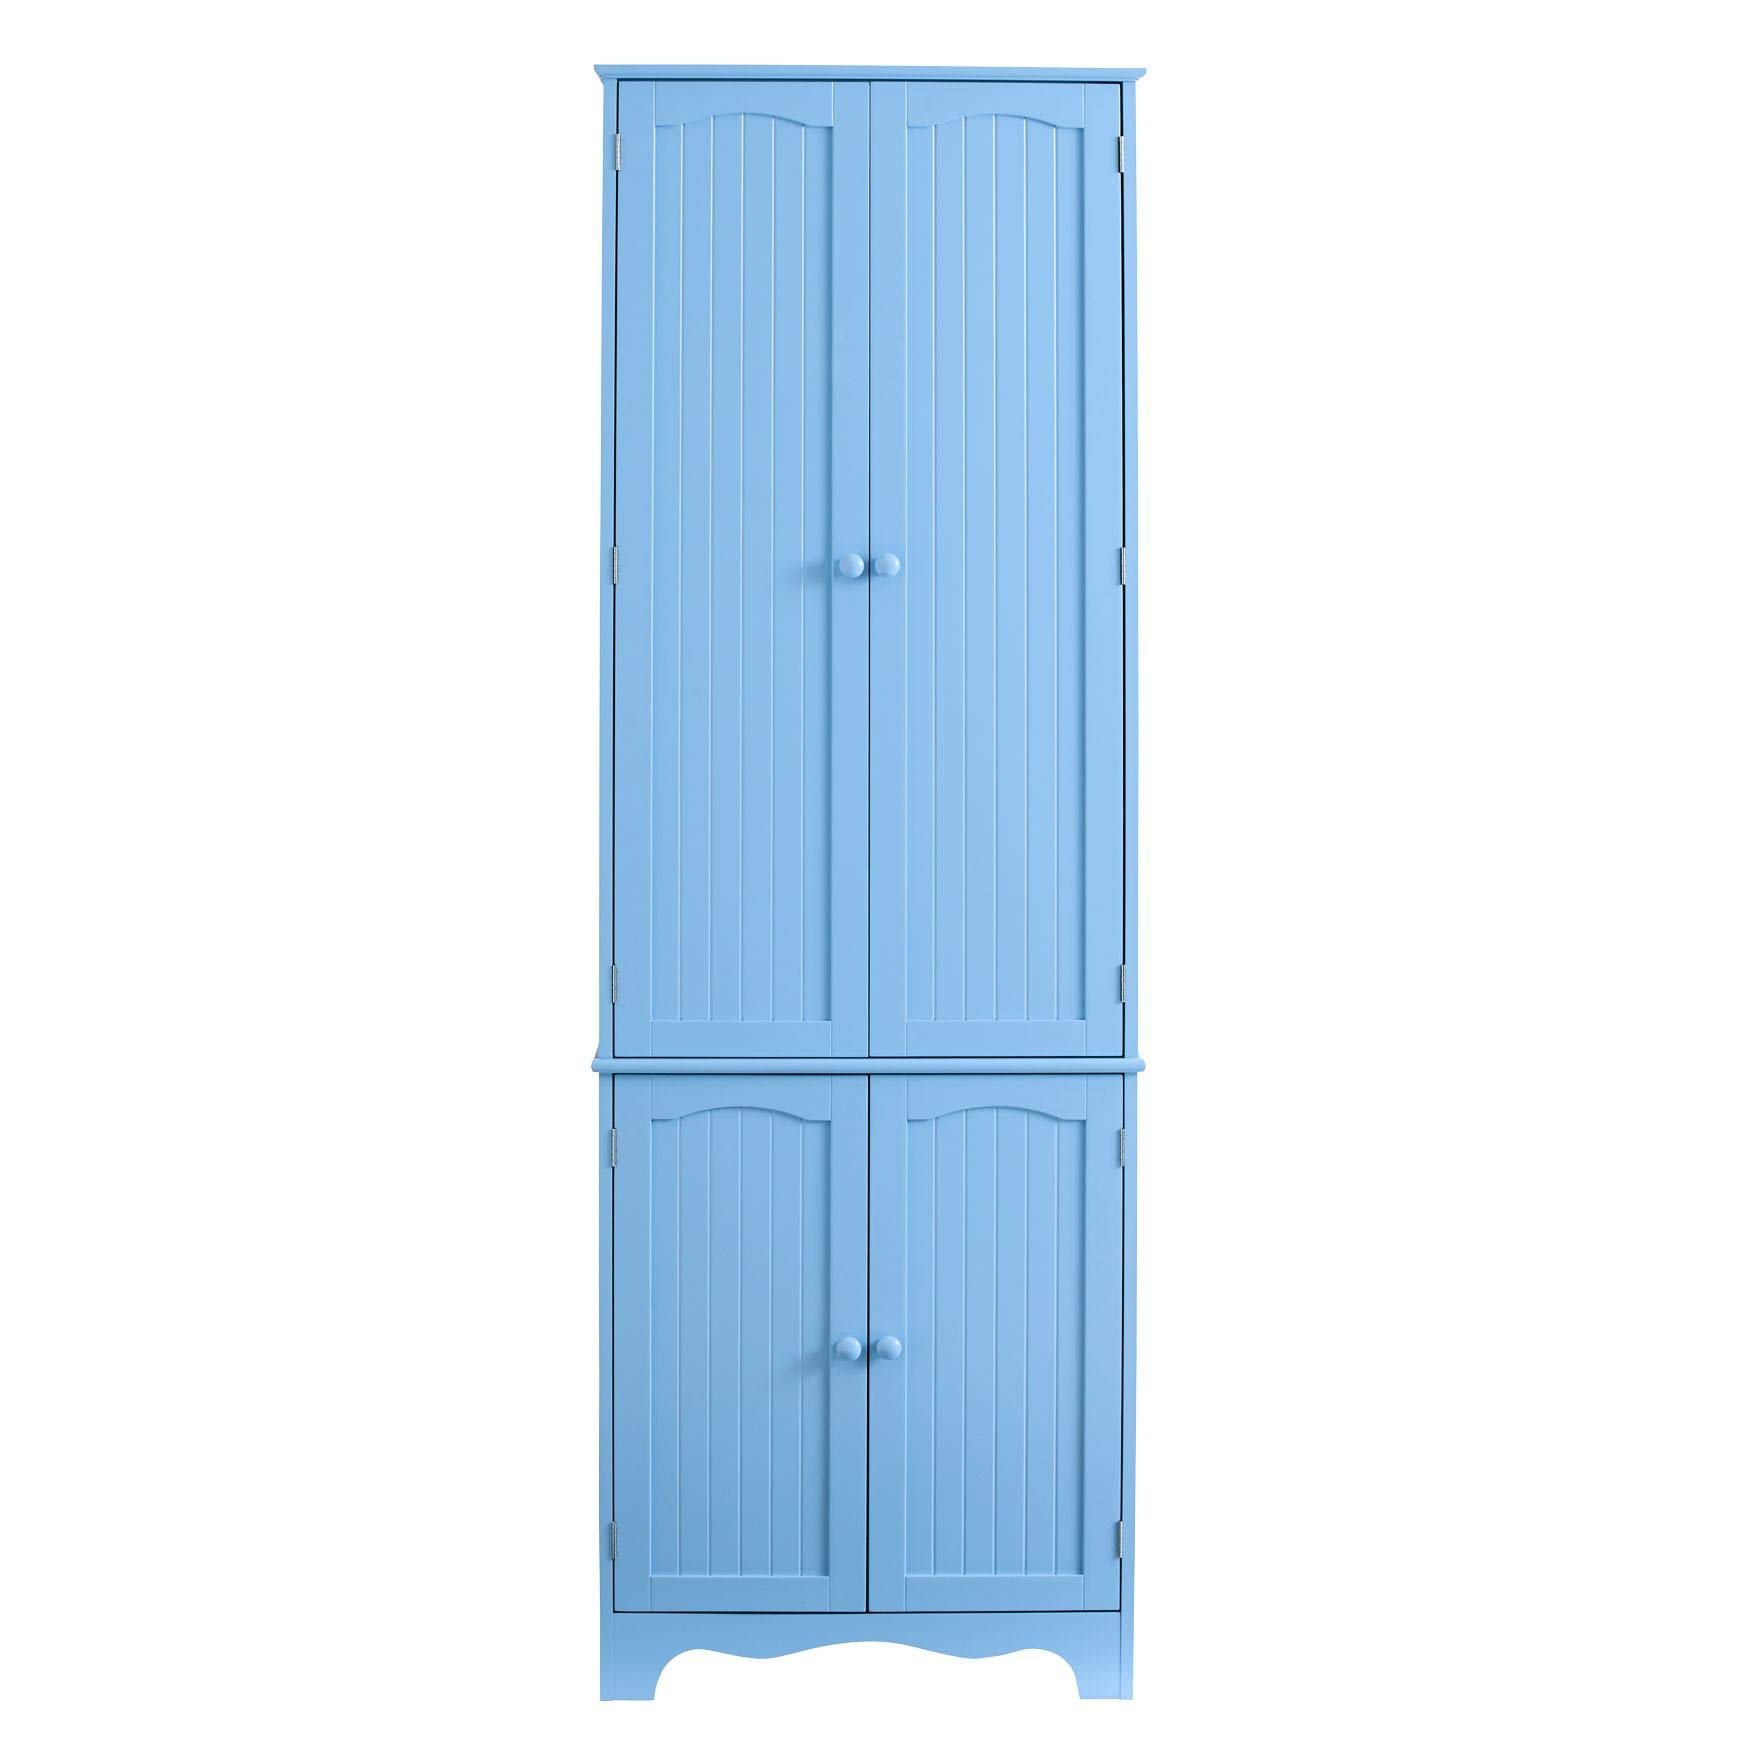 BrylaneHome Cottage Kitchen Tall Pantry Cabinet - Light Blue by BrylaneHome (Image #1)